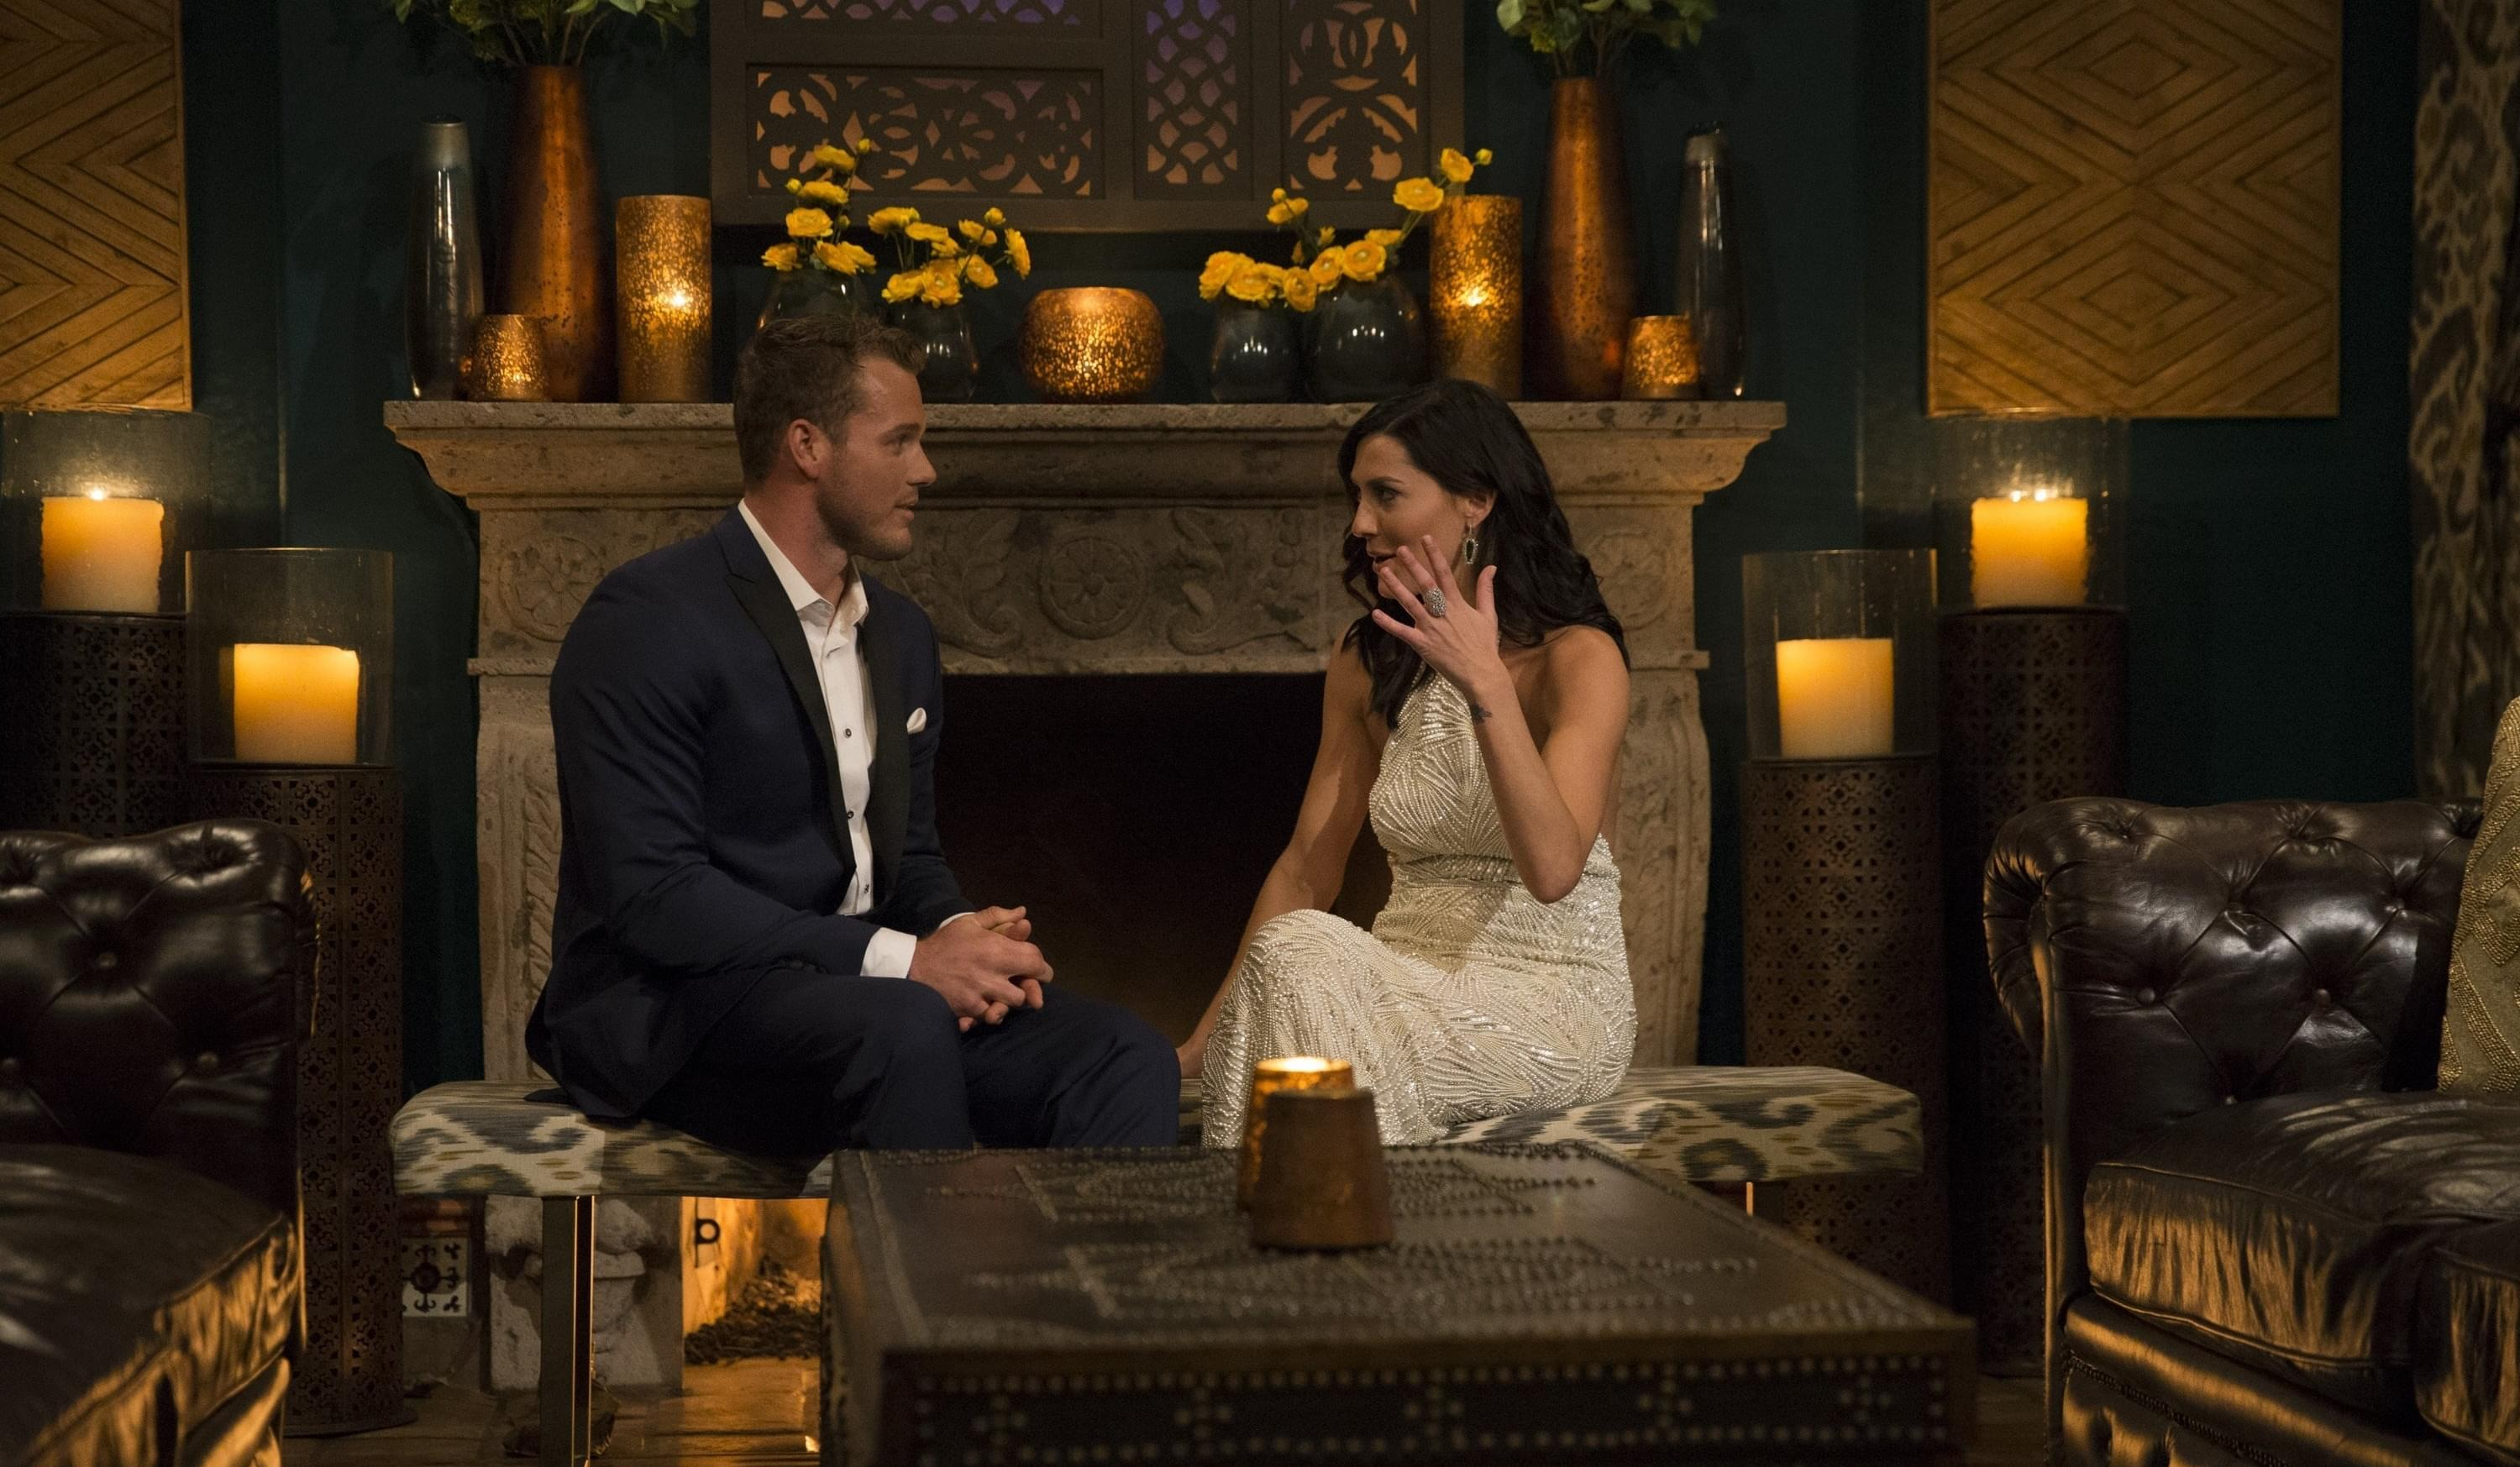 'BACHELORETTE' CONTESTANT LOOKS FAMILIAR FOR A REASON